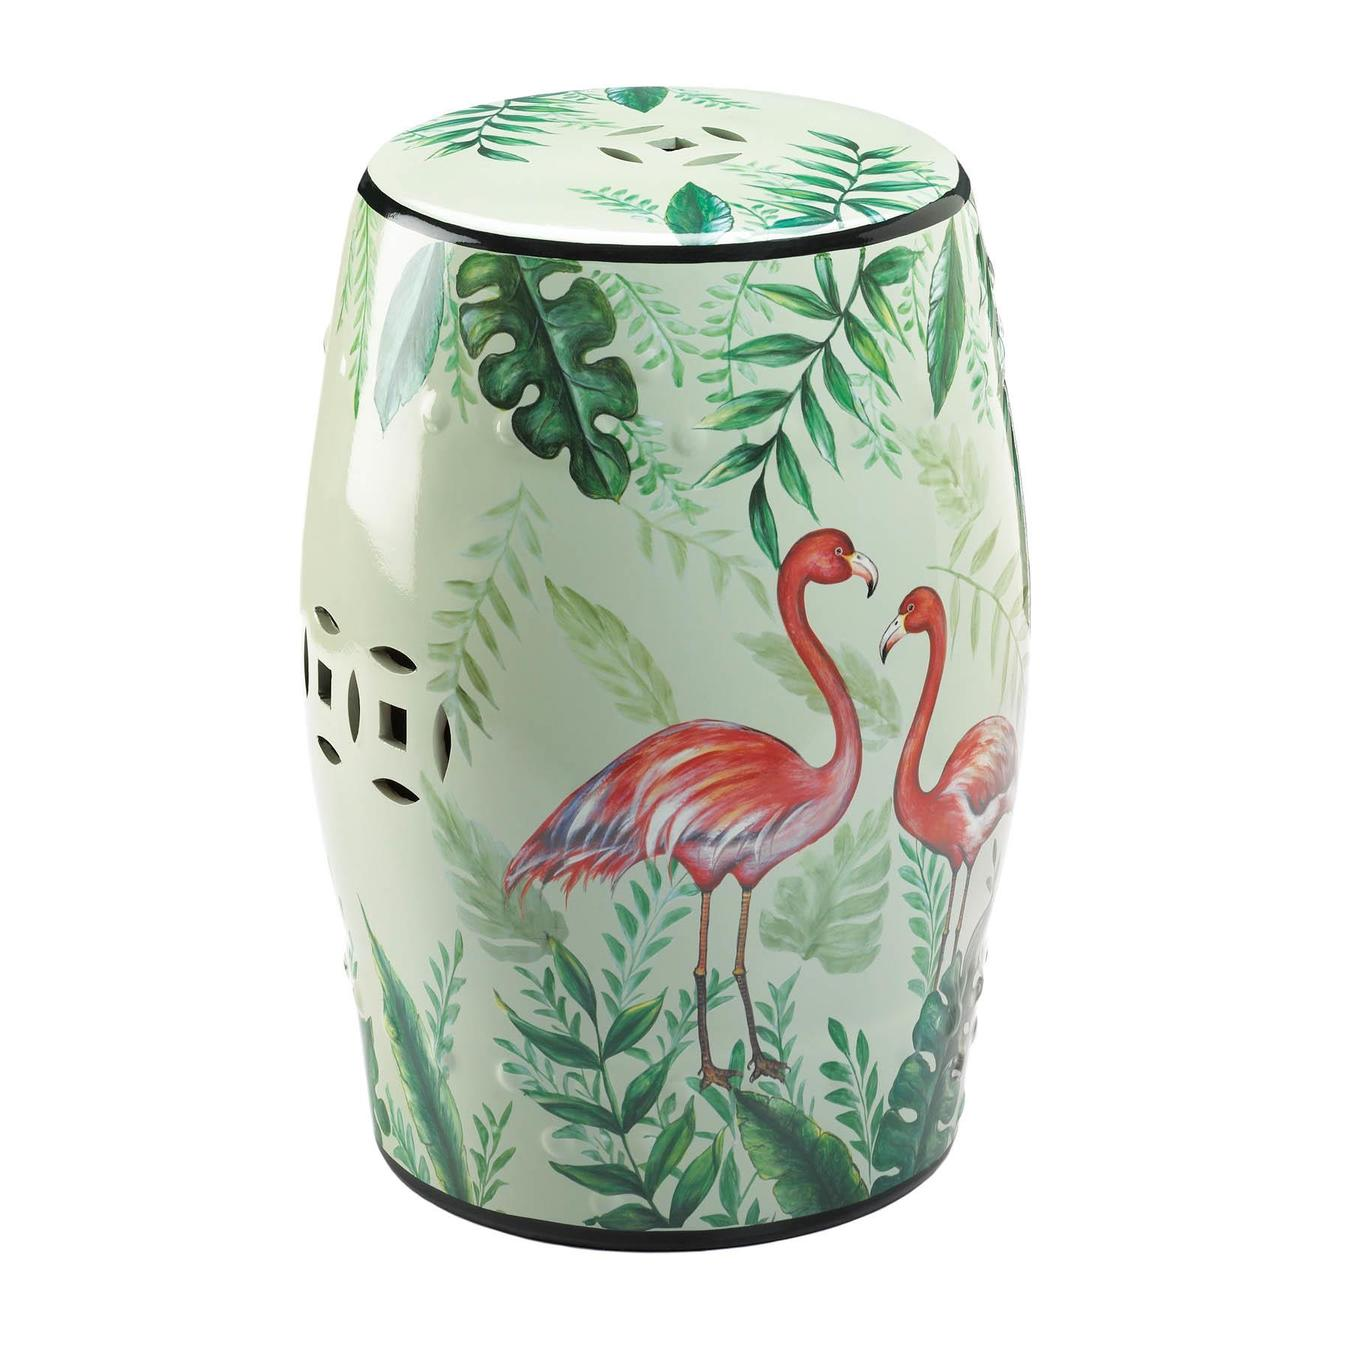 Decorative Stool-Indoor-Patio Use-Flamingo